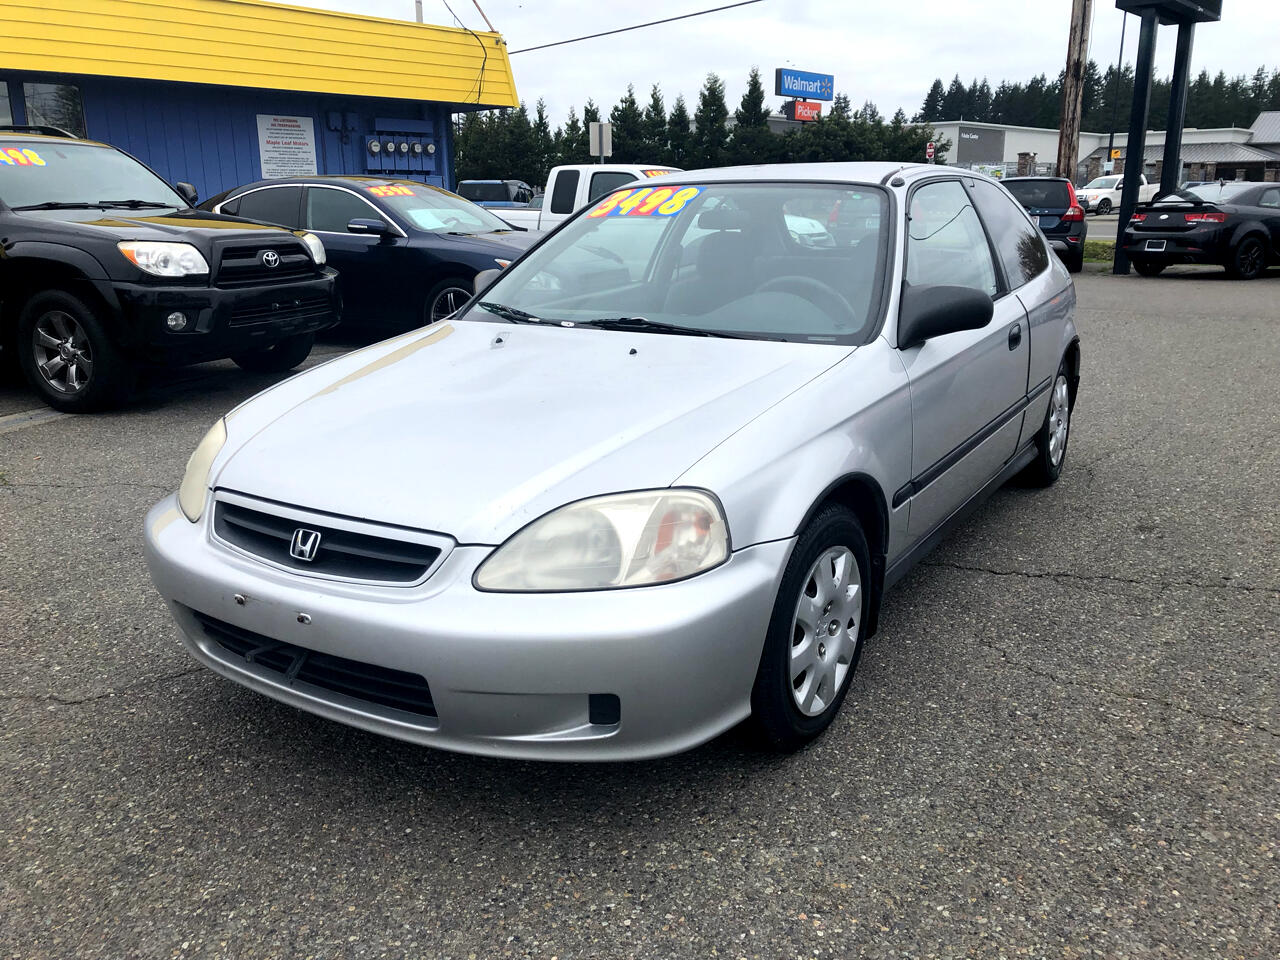 2000 Honda Civic DX hatchback